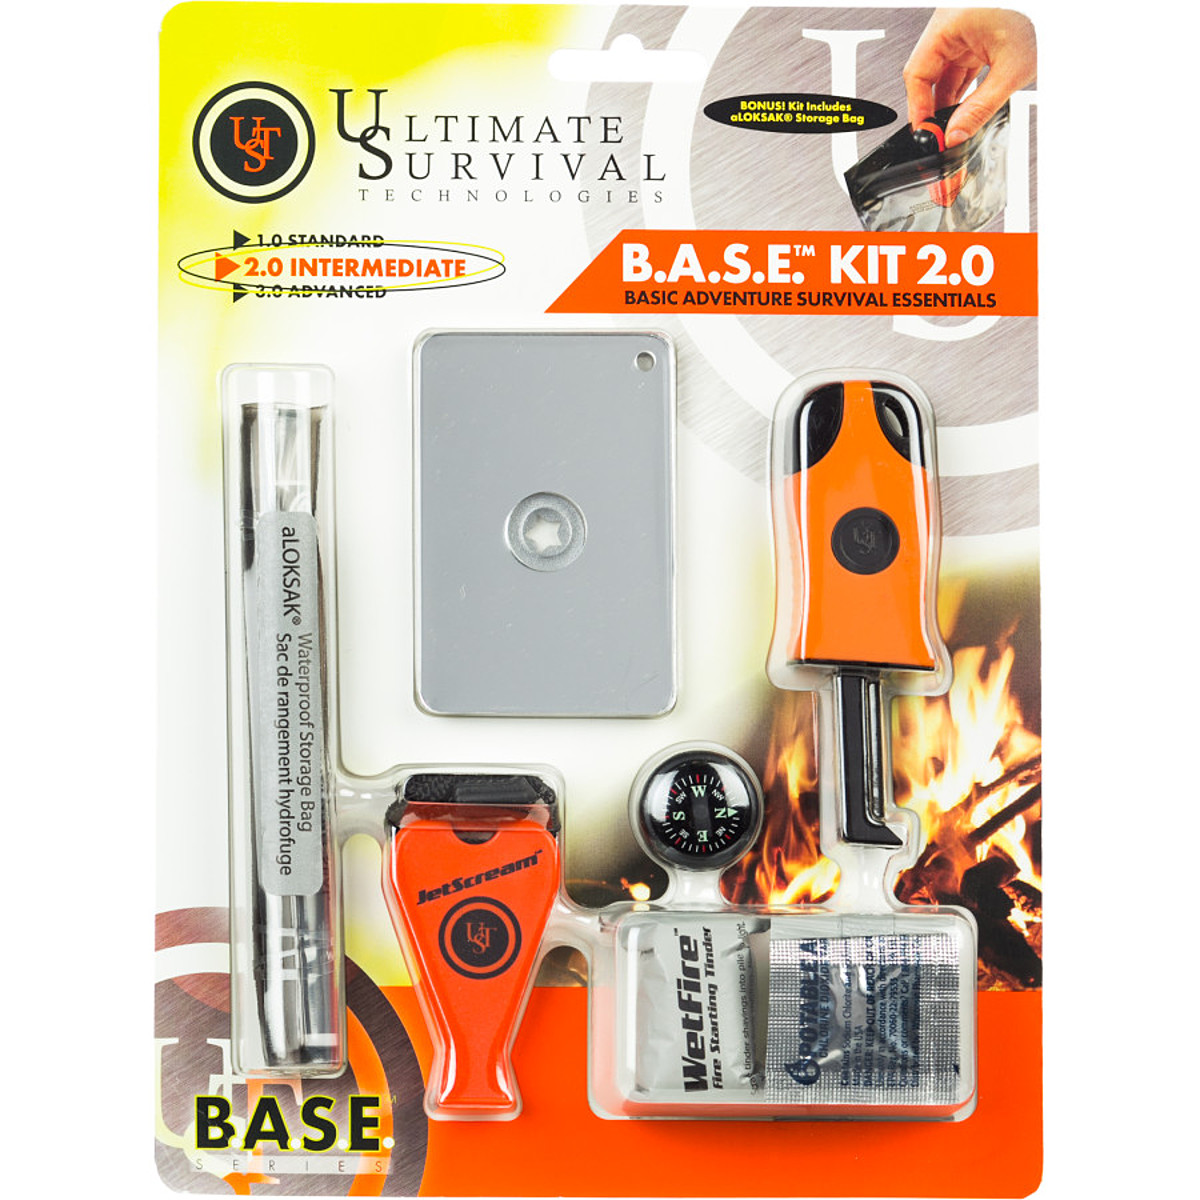 Ultimate Survival Technologies Base Kit 2.0